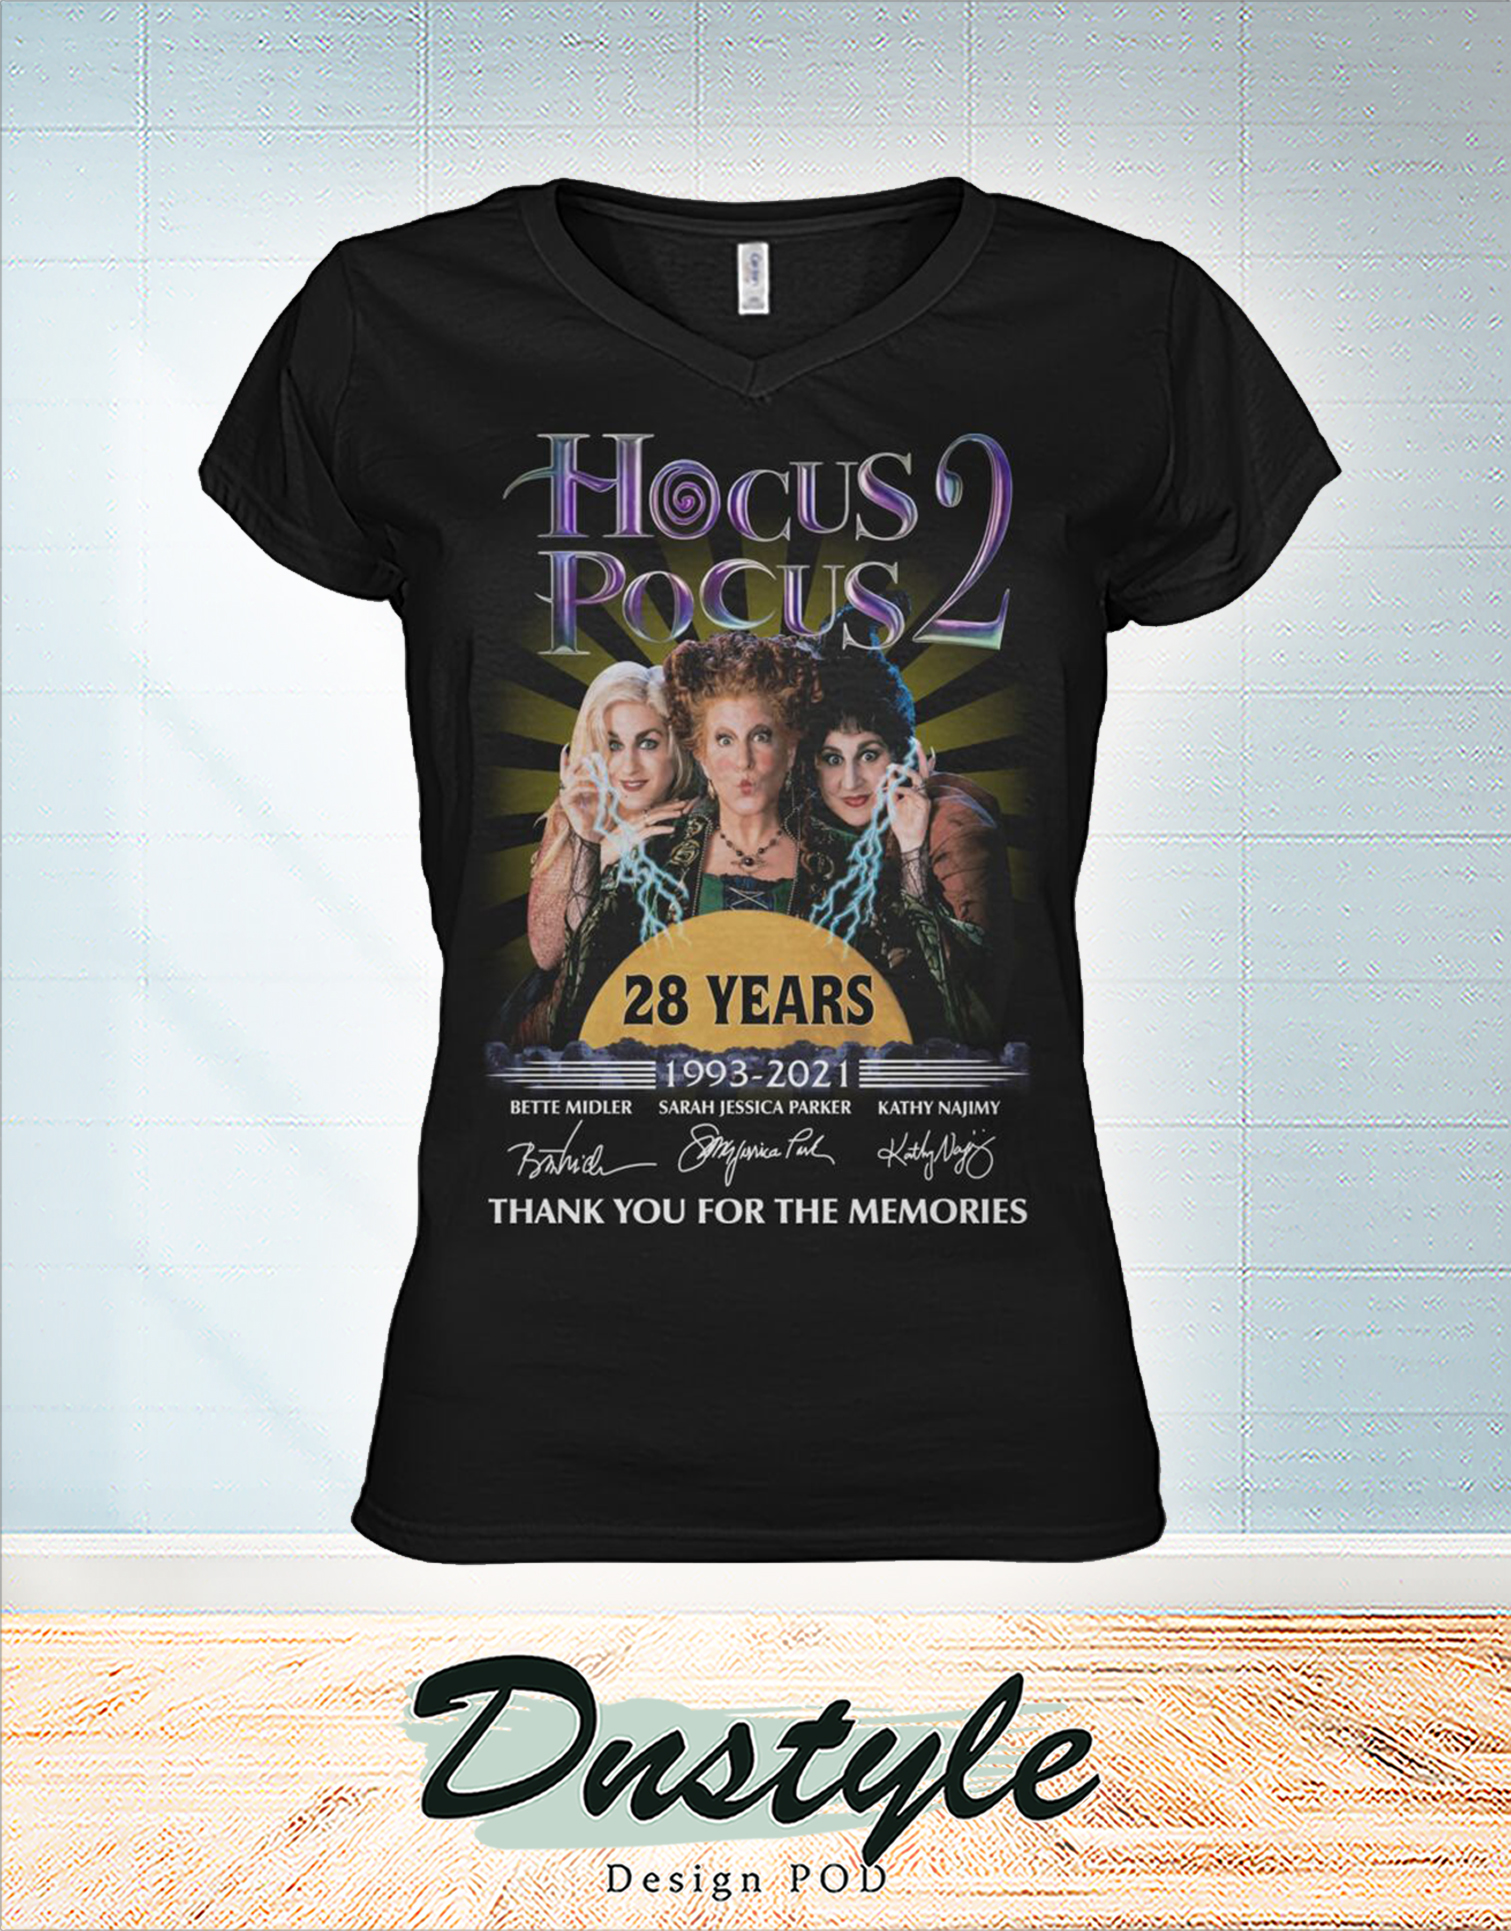 Hocus pocus 28 years thank you for the memories v-neck